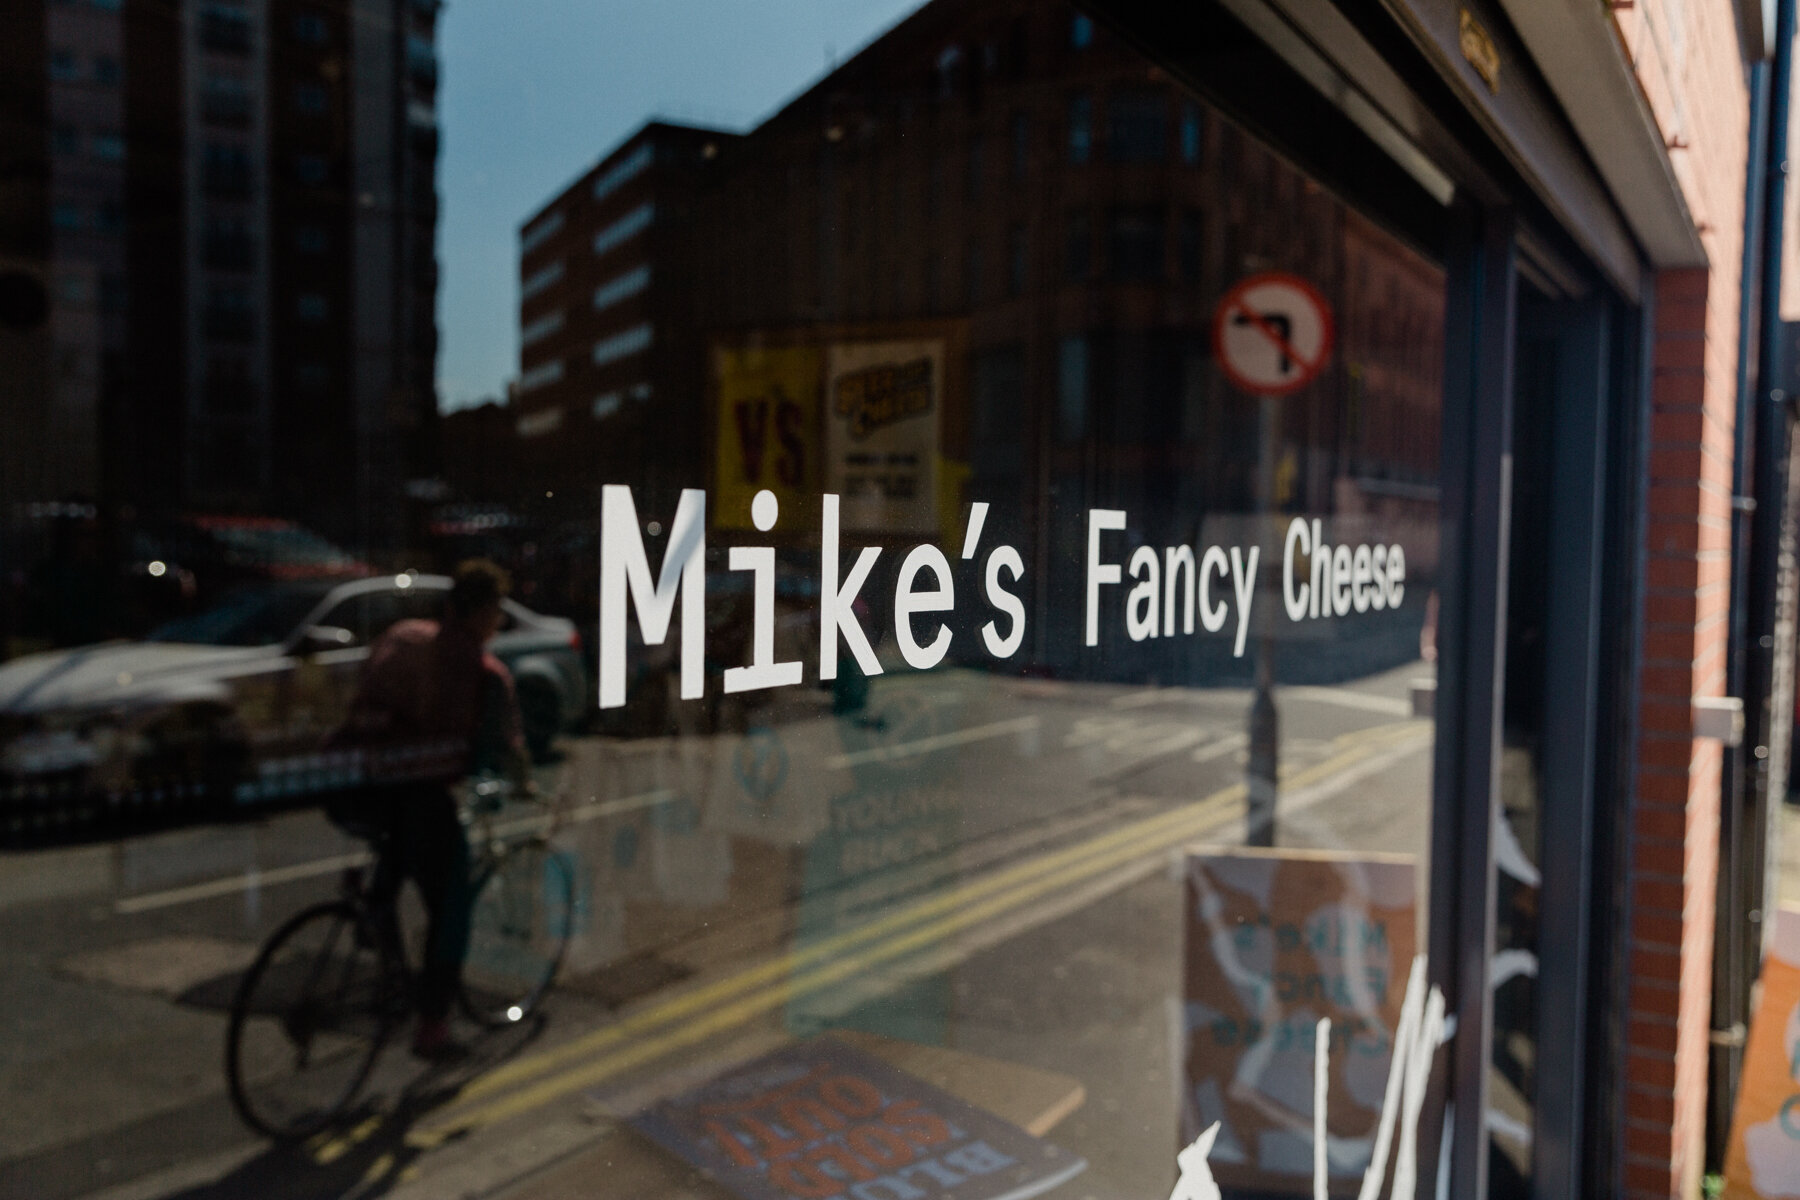 Mikes_Fancy_Cheese_lo-res-53.jpg